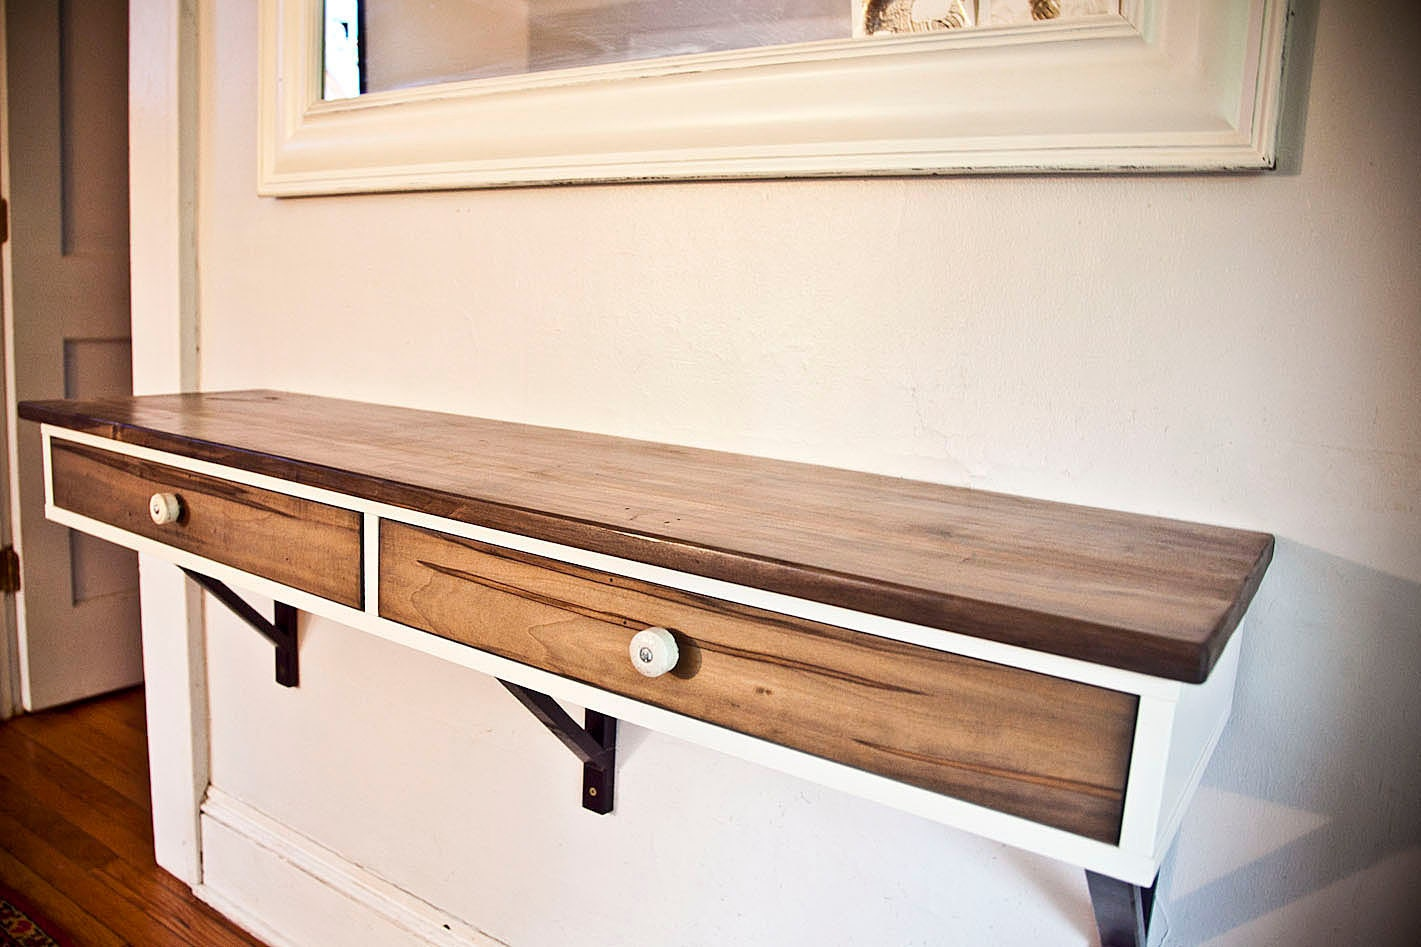 Custom Order - Floating Entry Table - Modified IKEA shelf with two drawers - Ambrosia Maple, porcelain insulator pulls